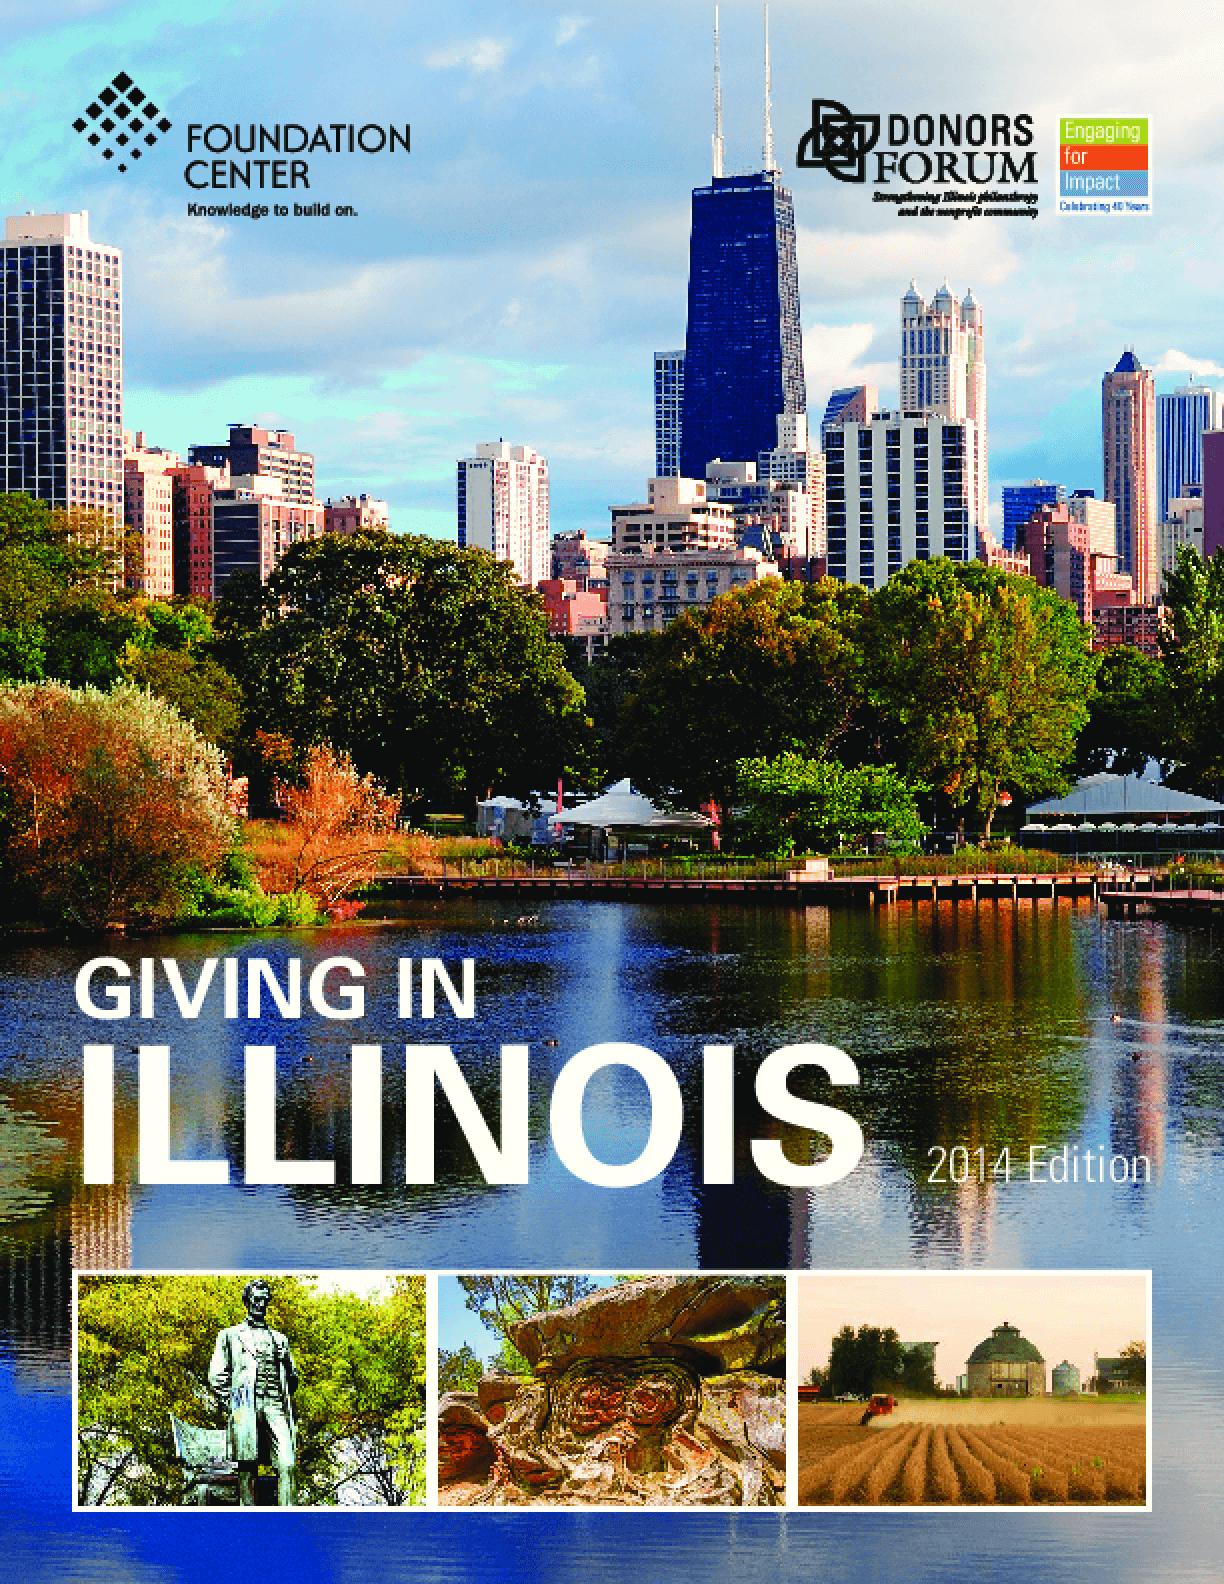 Giving in Illinois, 2014